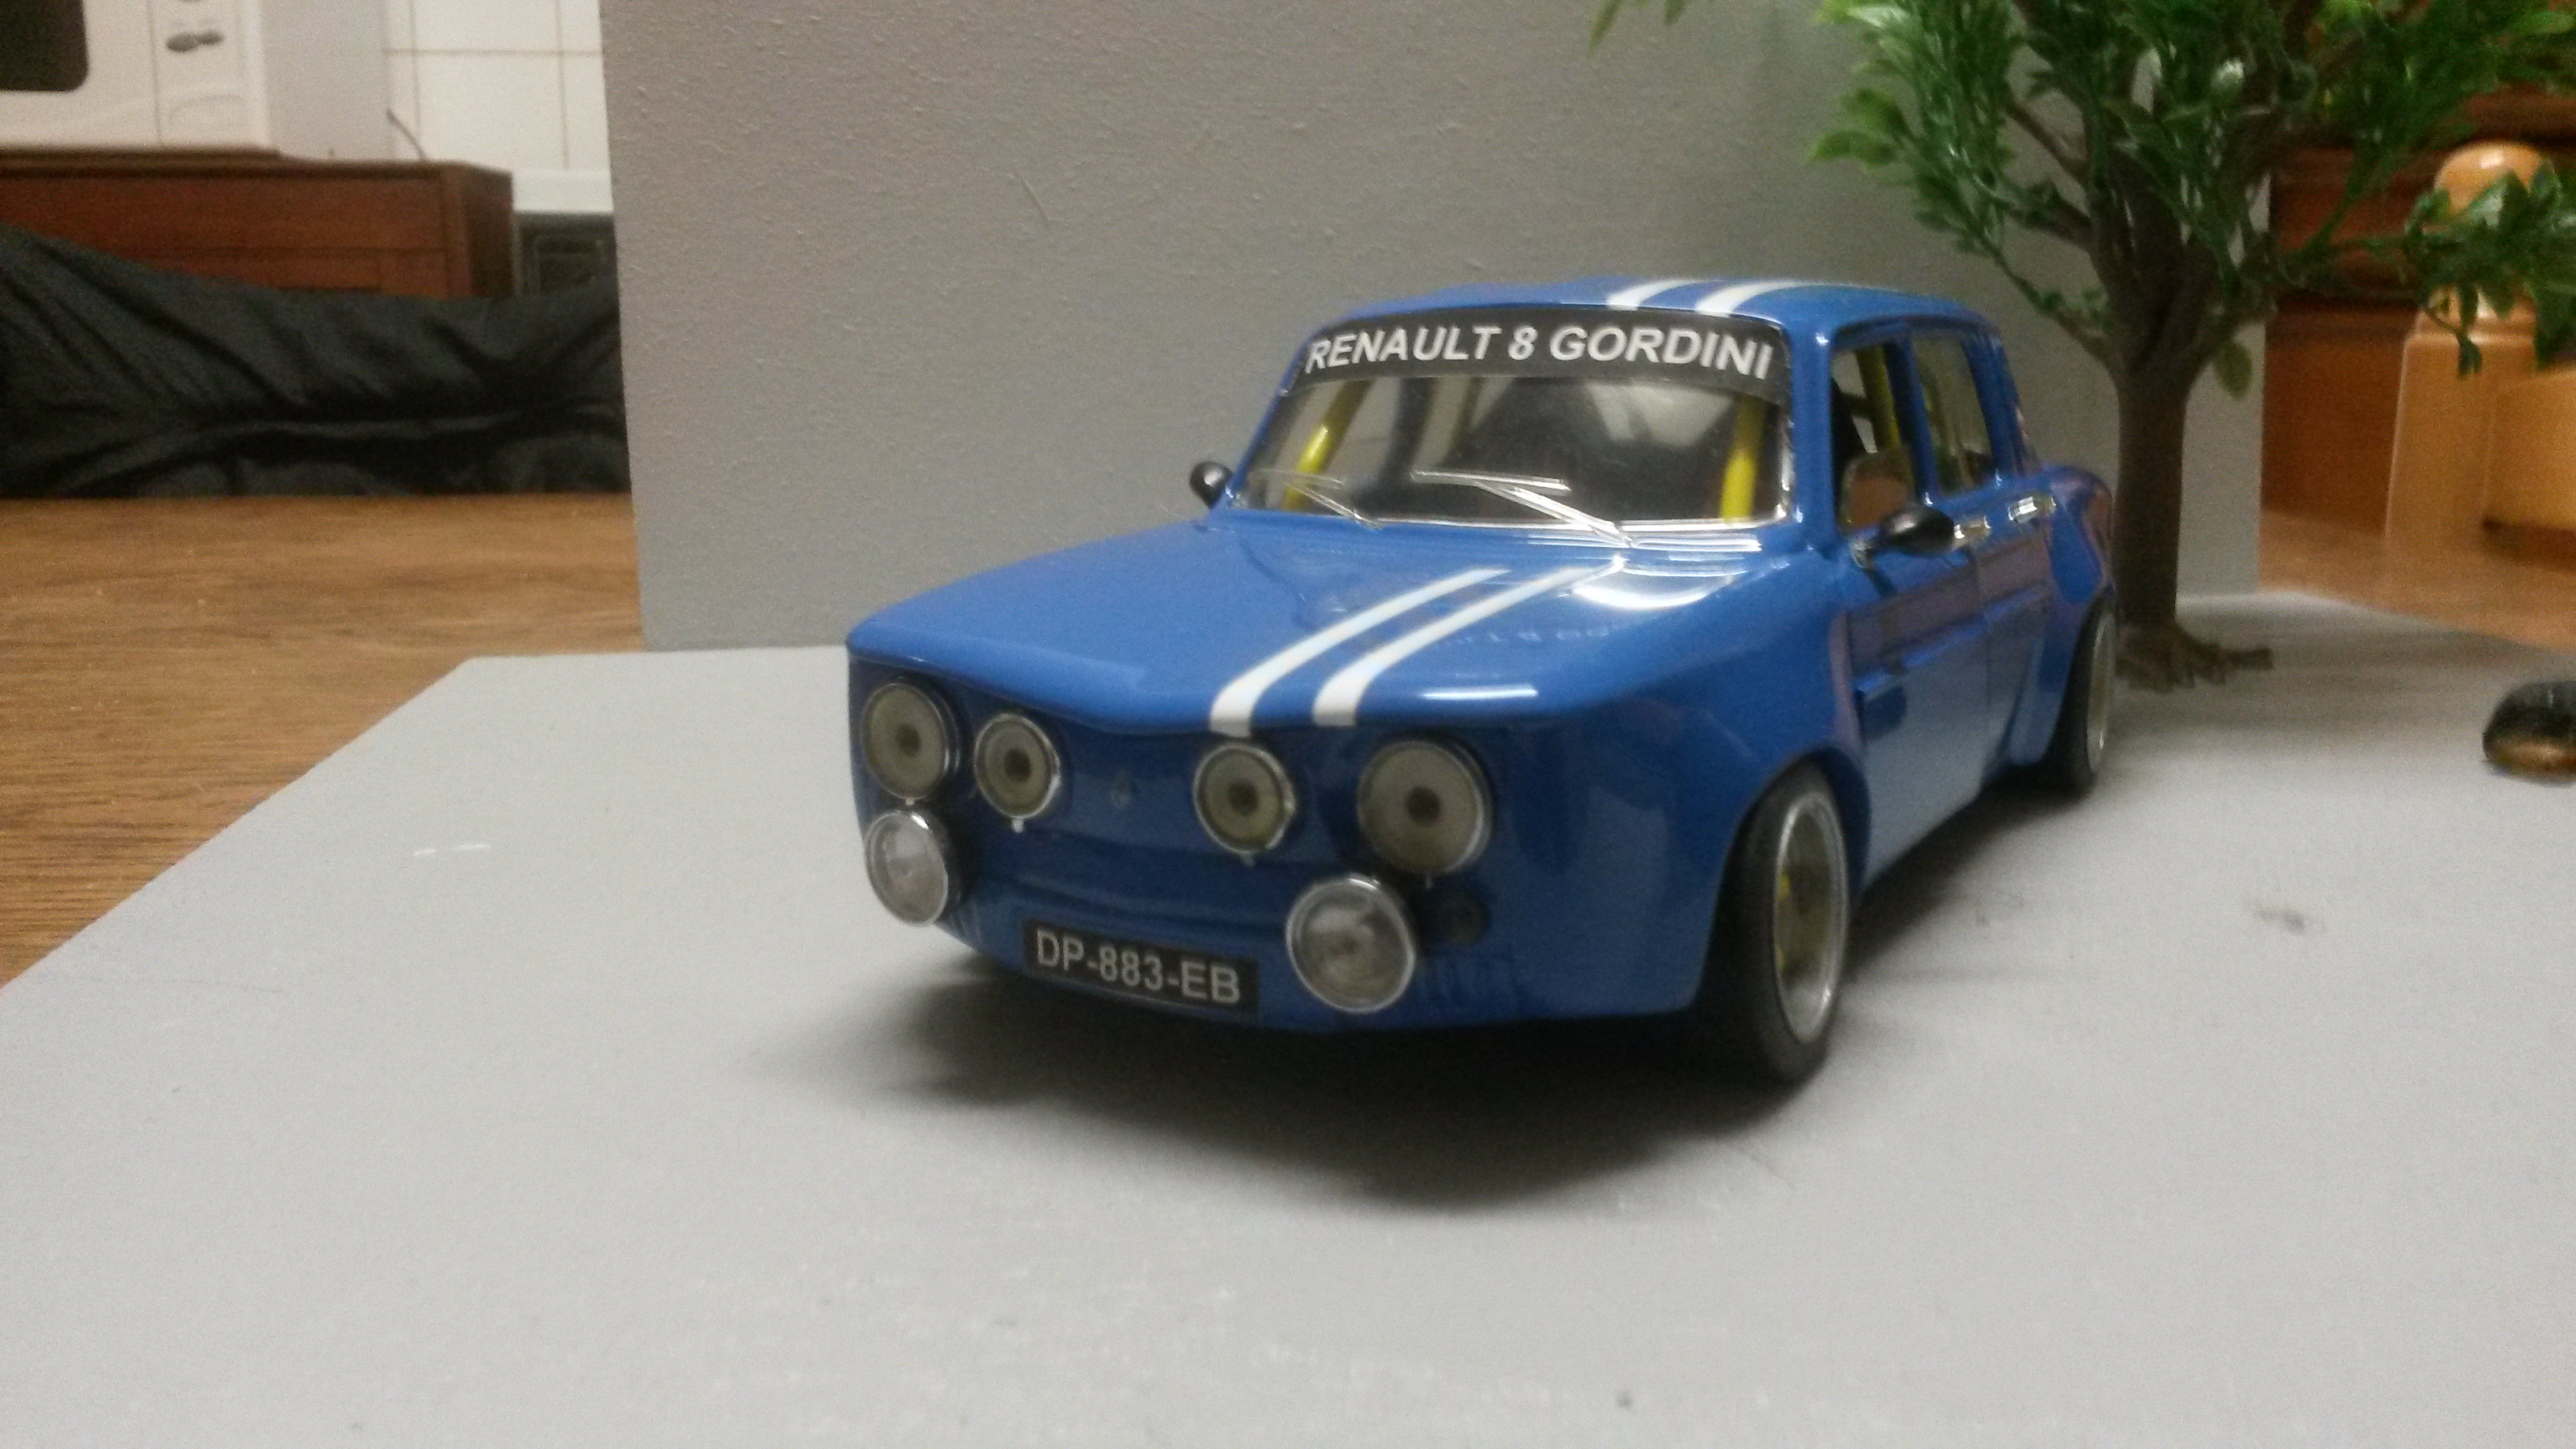 Miniature Renault 8 Gordini bleu kit large groupe A tuning . Renault 8 Gordini bleu kit large groupe A miniature 1/18